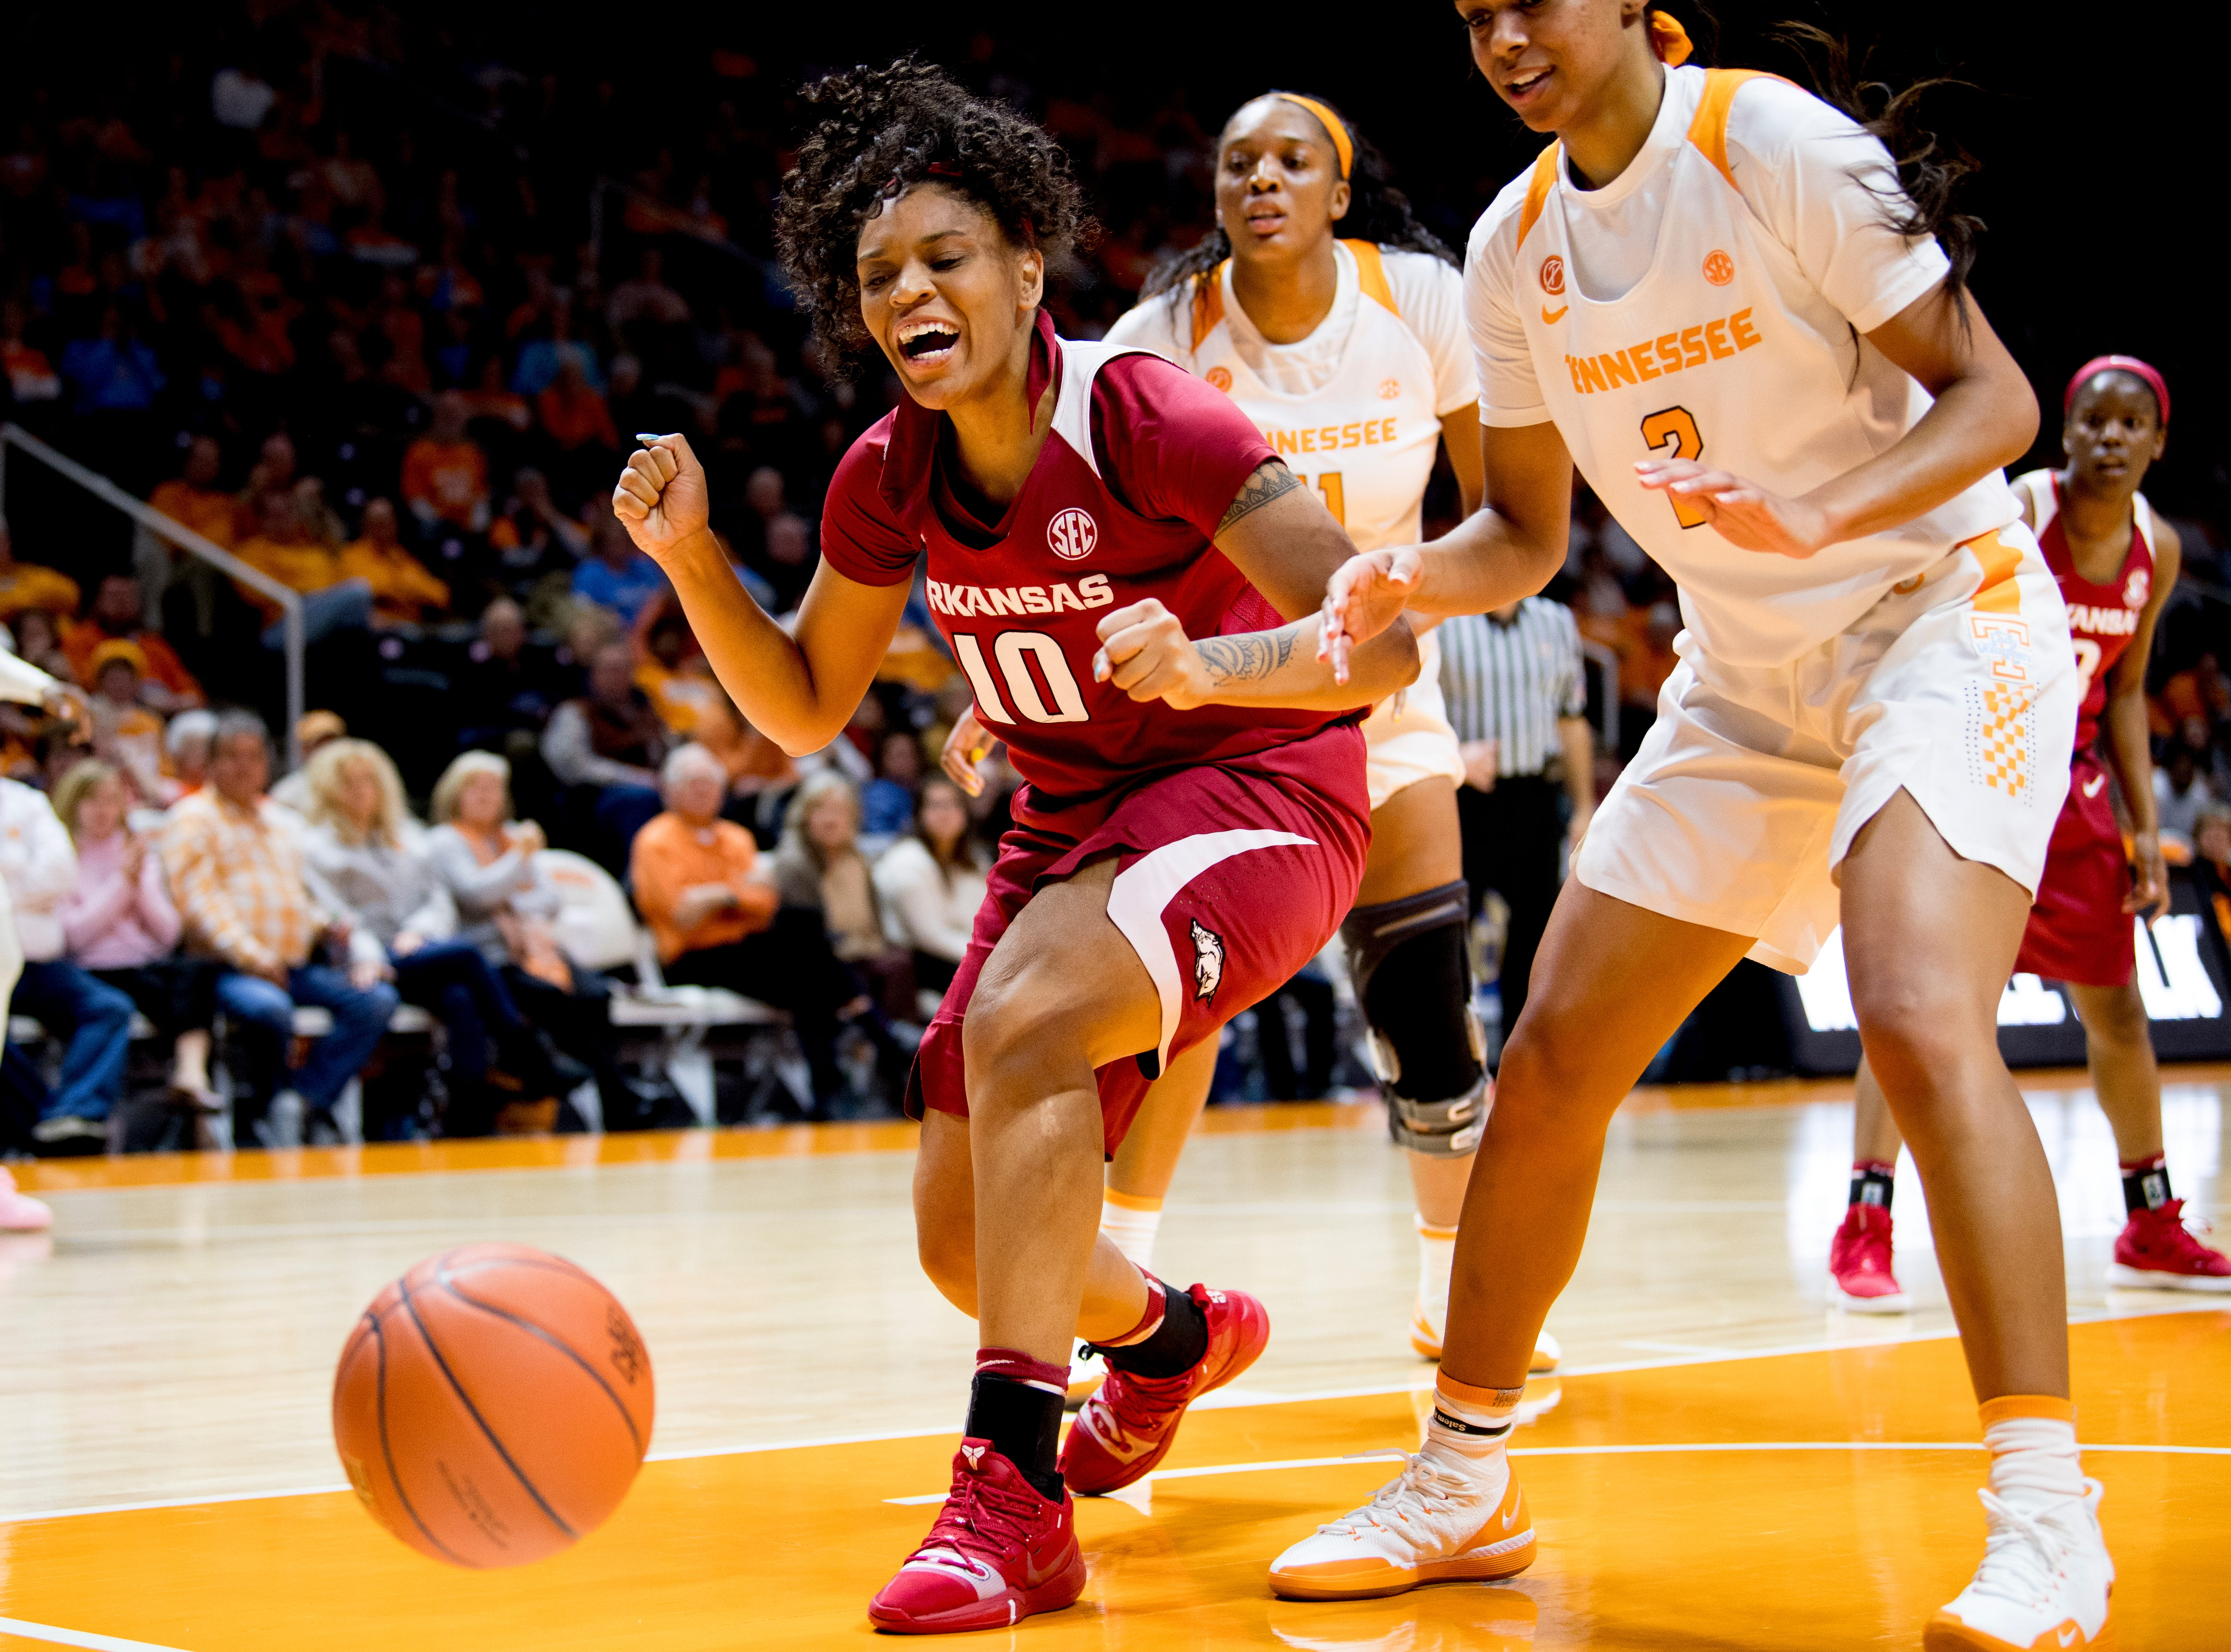 Arkansas forward/center Kiara Williams (10) reacts after losing the ball during a game between Tennessee and Arkansas at Thompson-Boling Arena in , Tennessee on Monday, January 21, 2019.